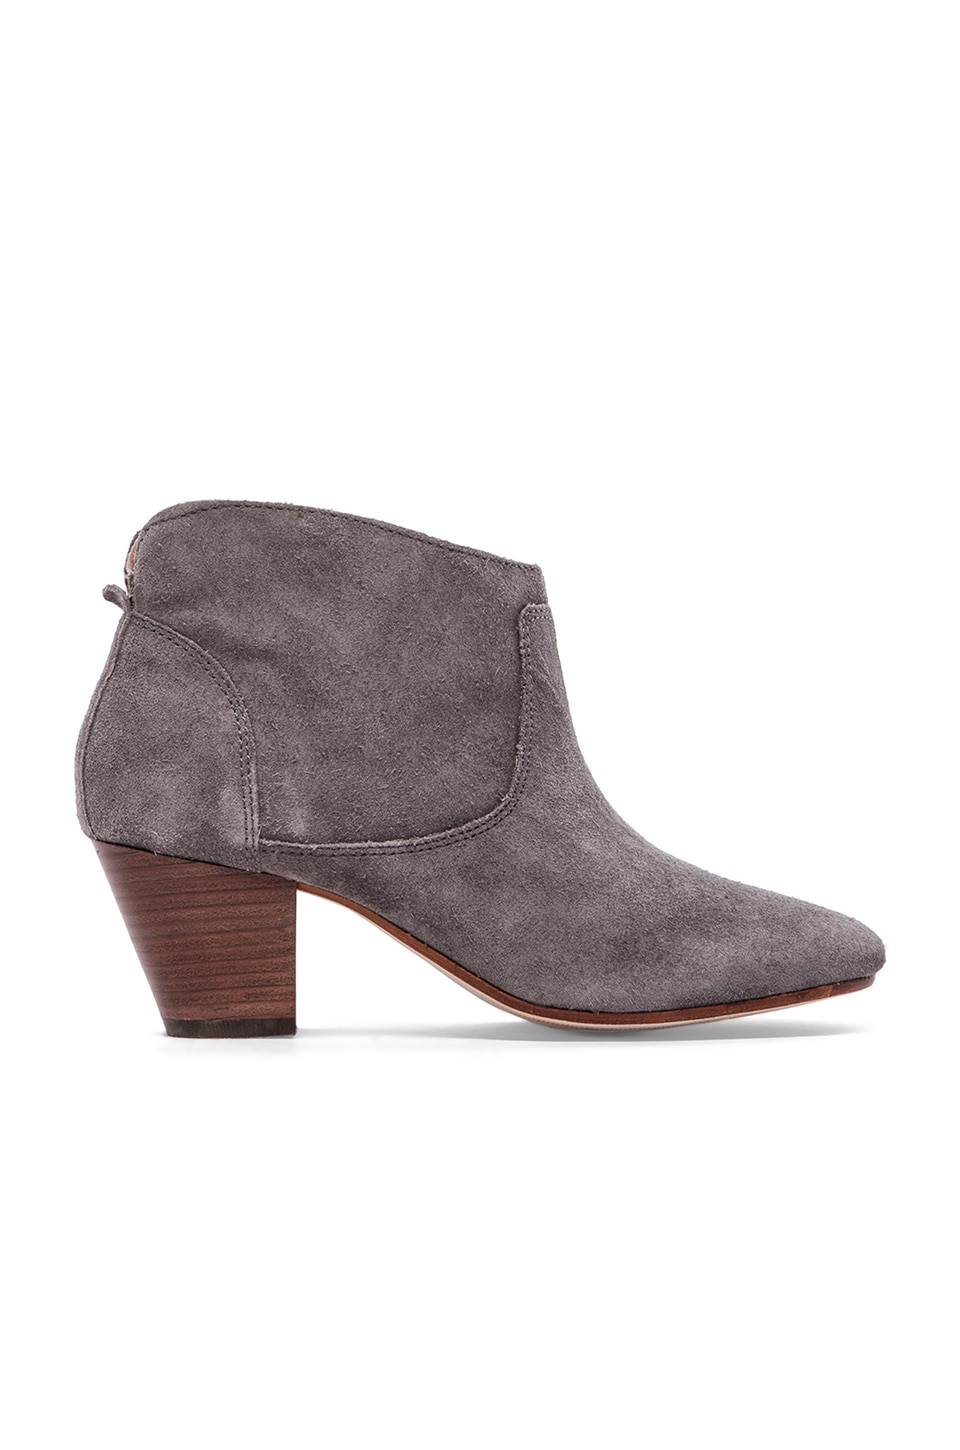 H by Hudson Kiver Bootie in Slate